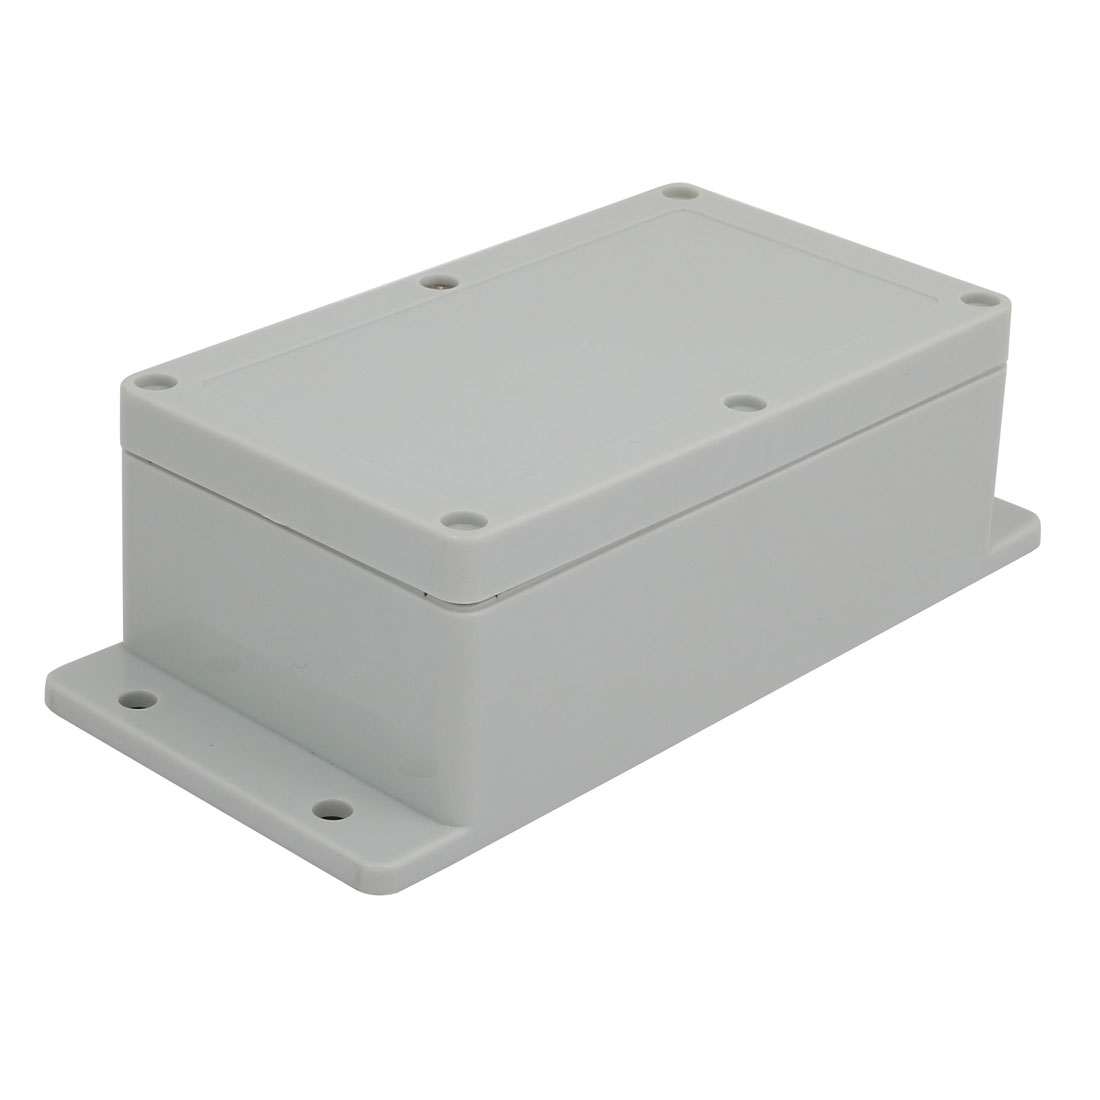 158mmx90mmx60mm Electronic ABS Plastic DIY Junction Box Enclosure Box Gray